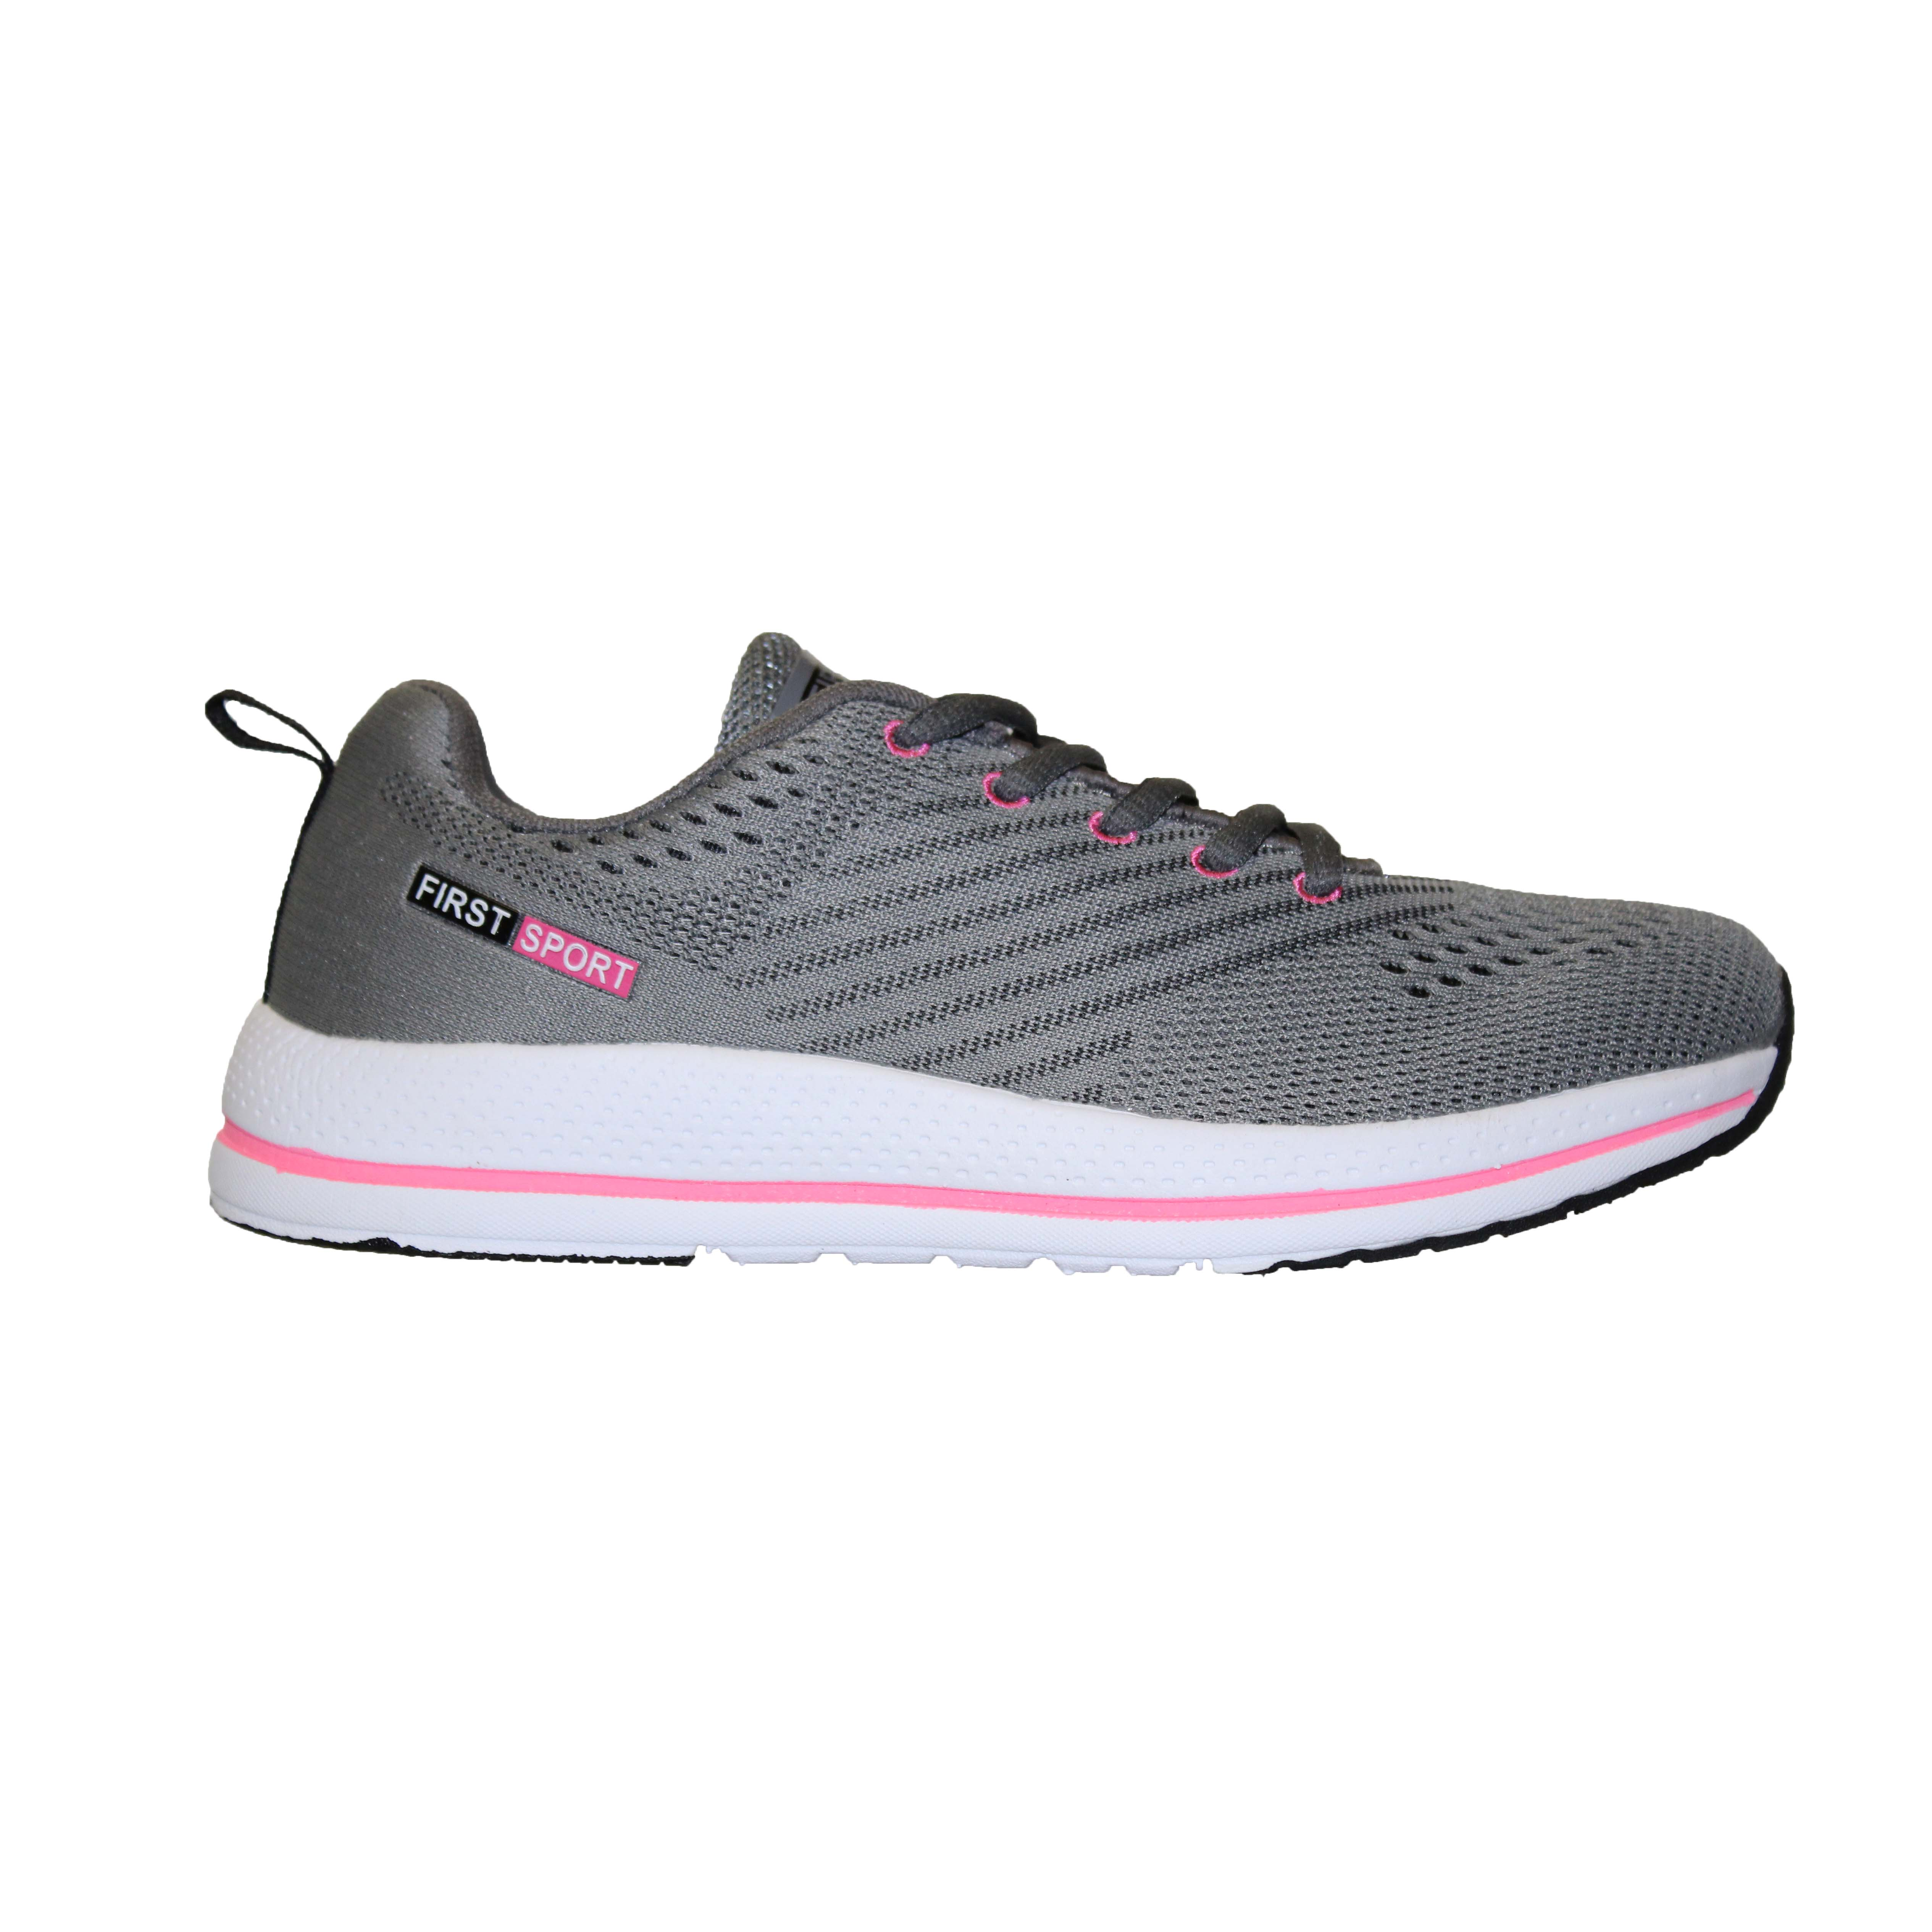 san francisco 8a63b 8aca0 (Sale) First Sport Ladies Running Shoes: (05252) Grey/Knockout Pink